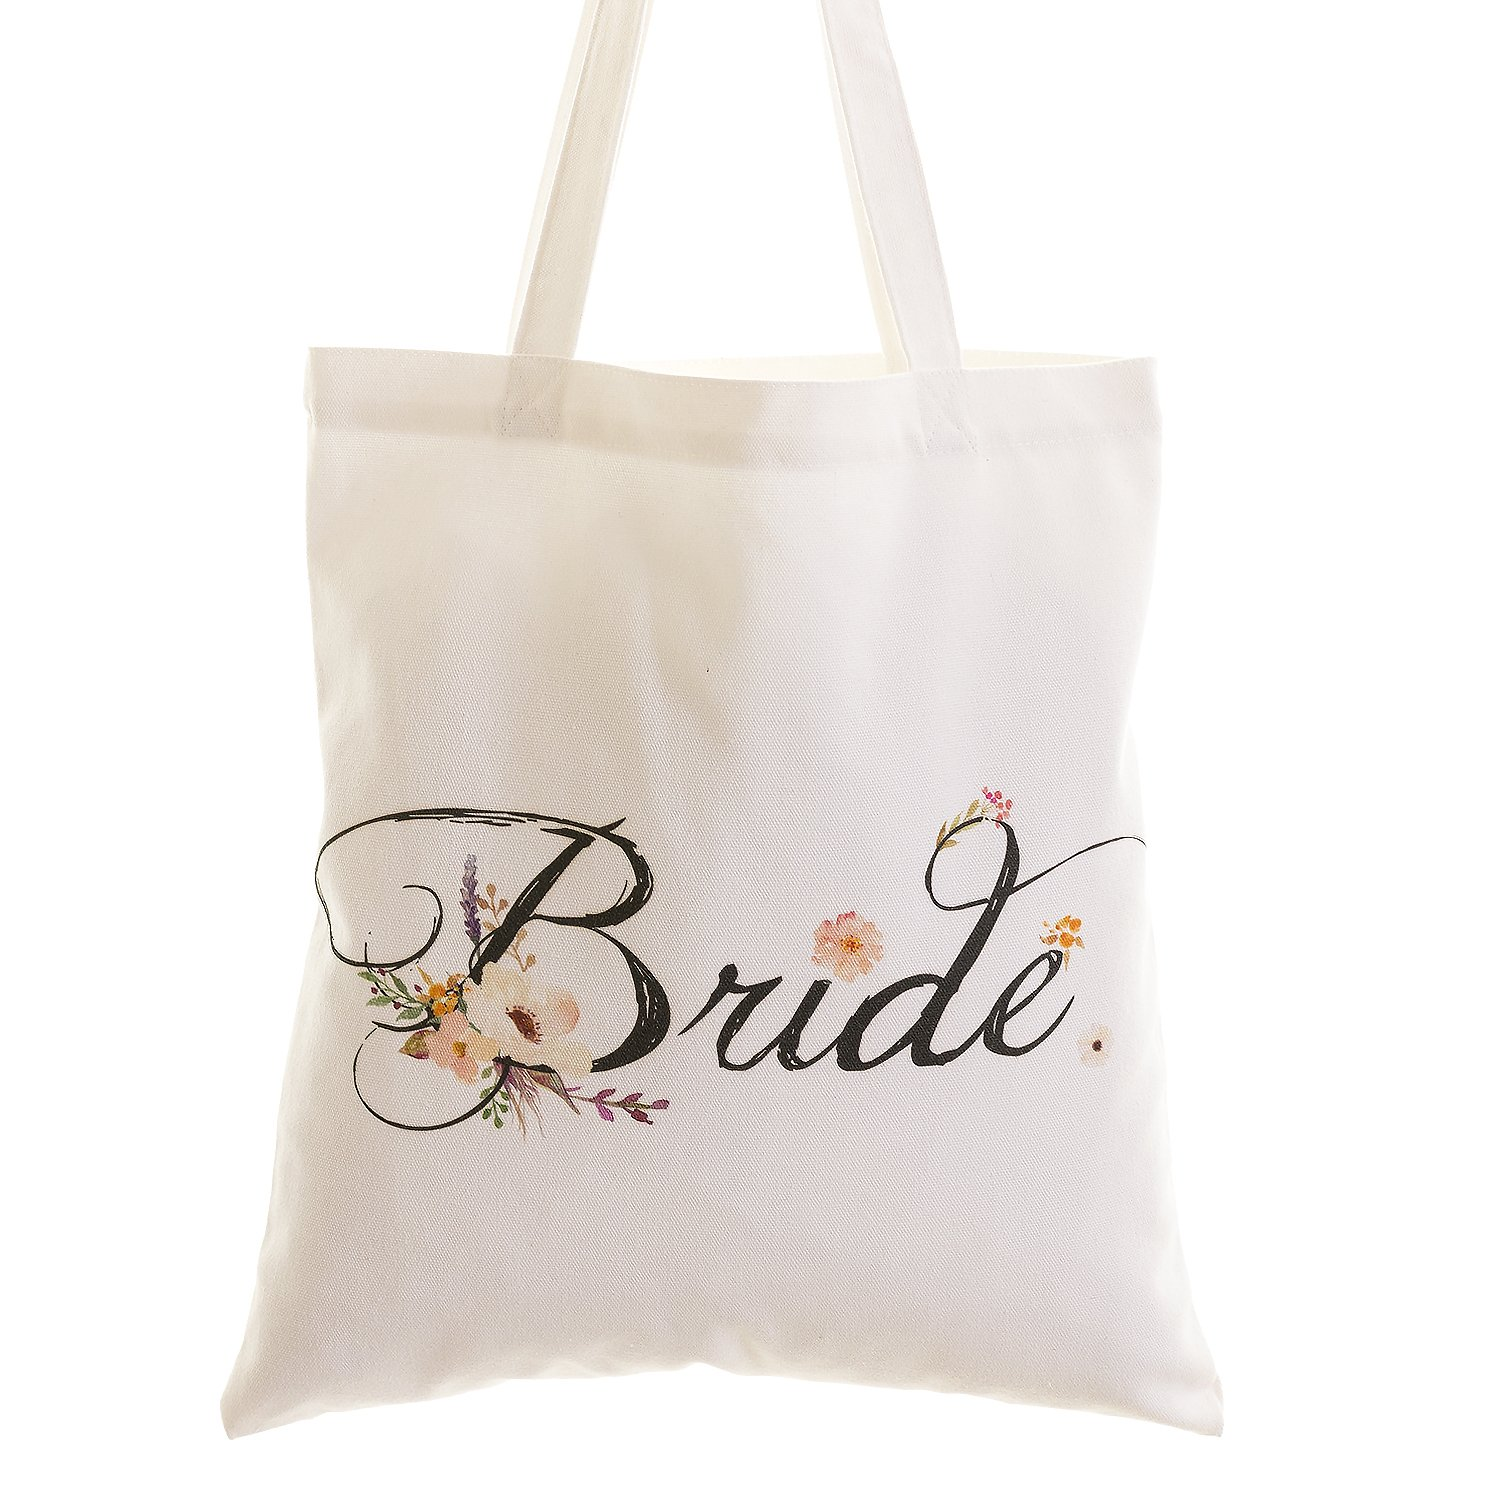 Ling's moment Wedding Bride Floral Cotton Canvas Tote Bag with Interior Pocket for Bride to Be, Bridal Shower Gifts